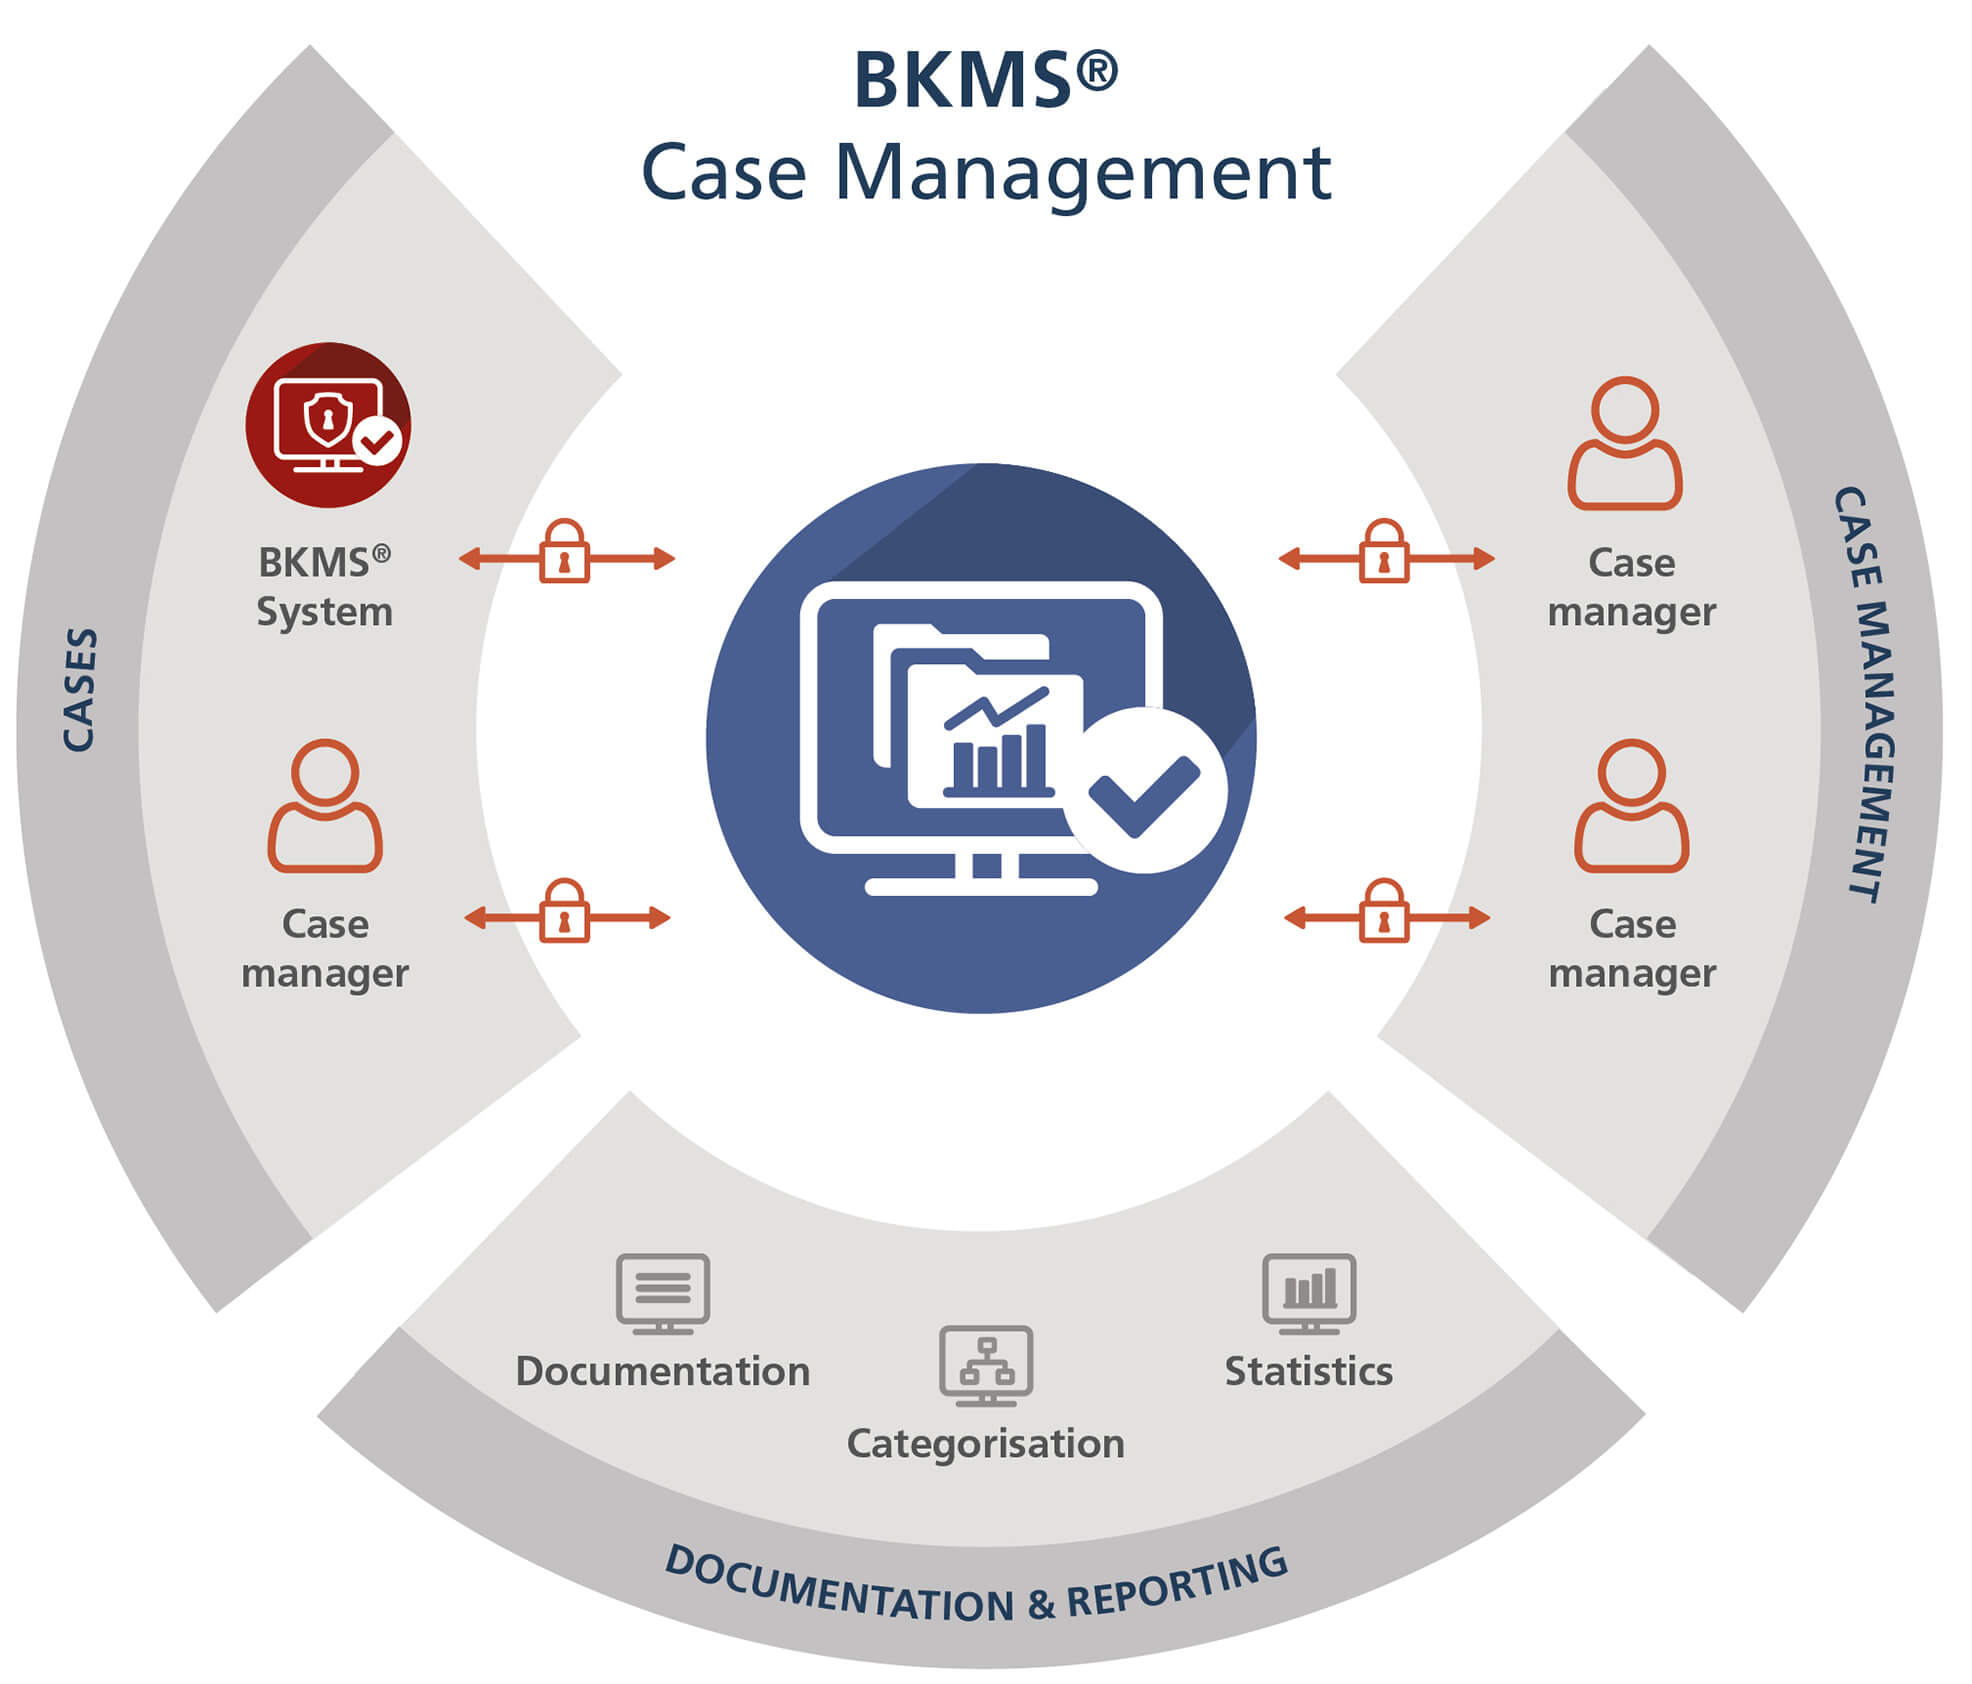 BKMS Case Management